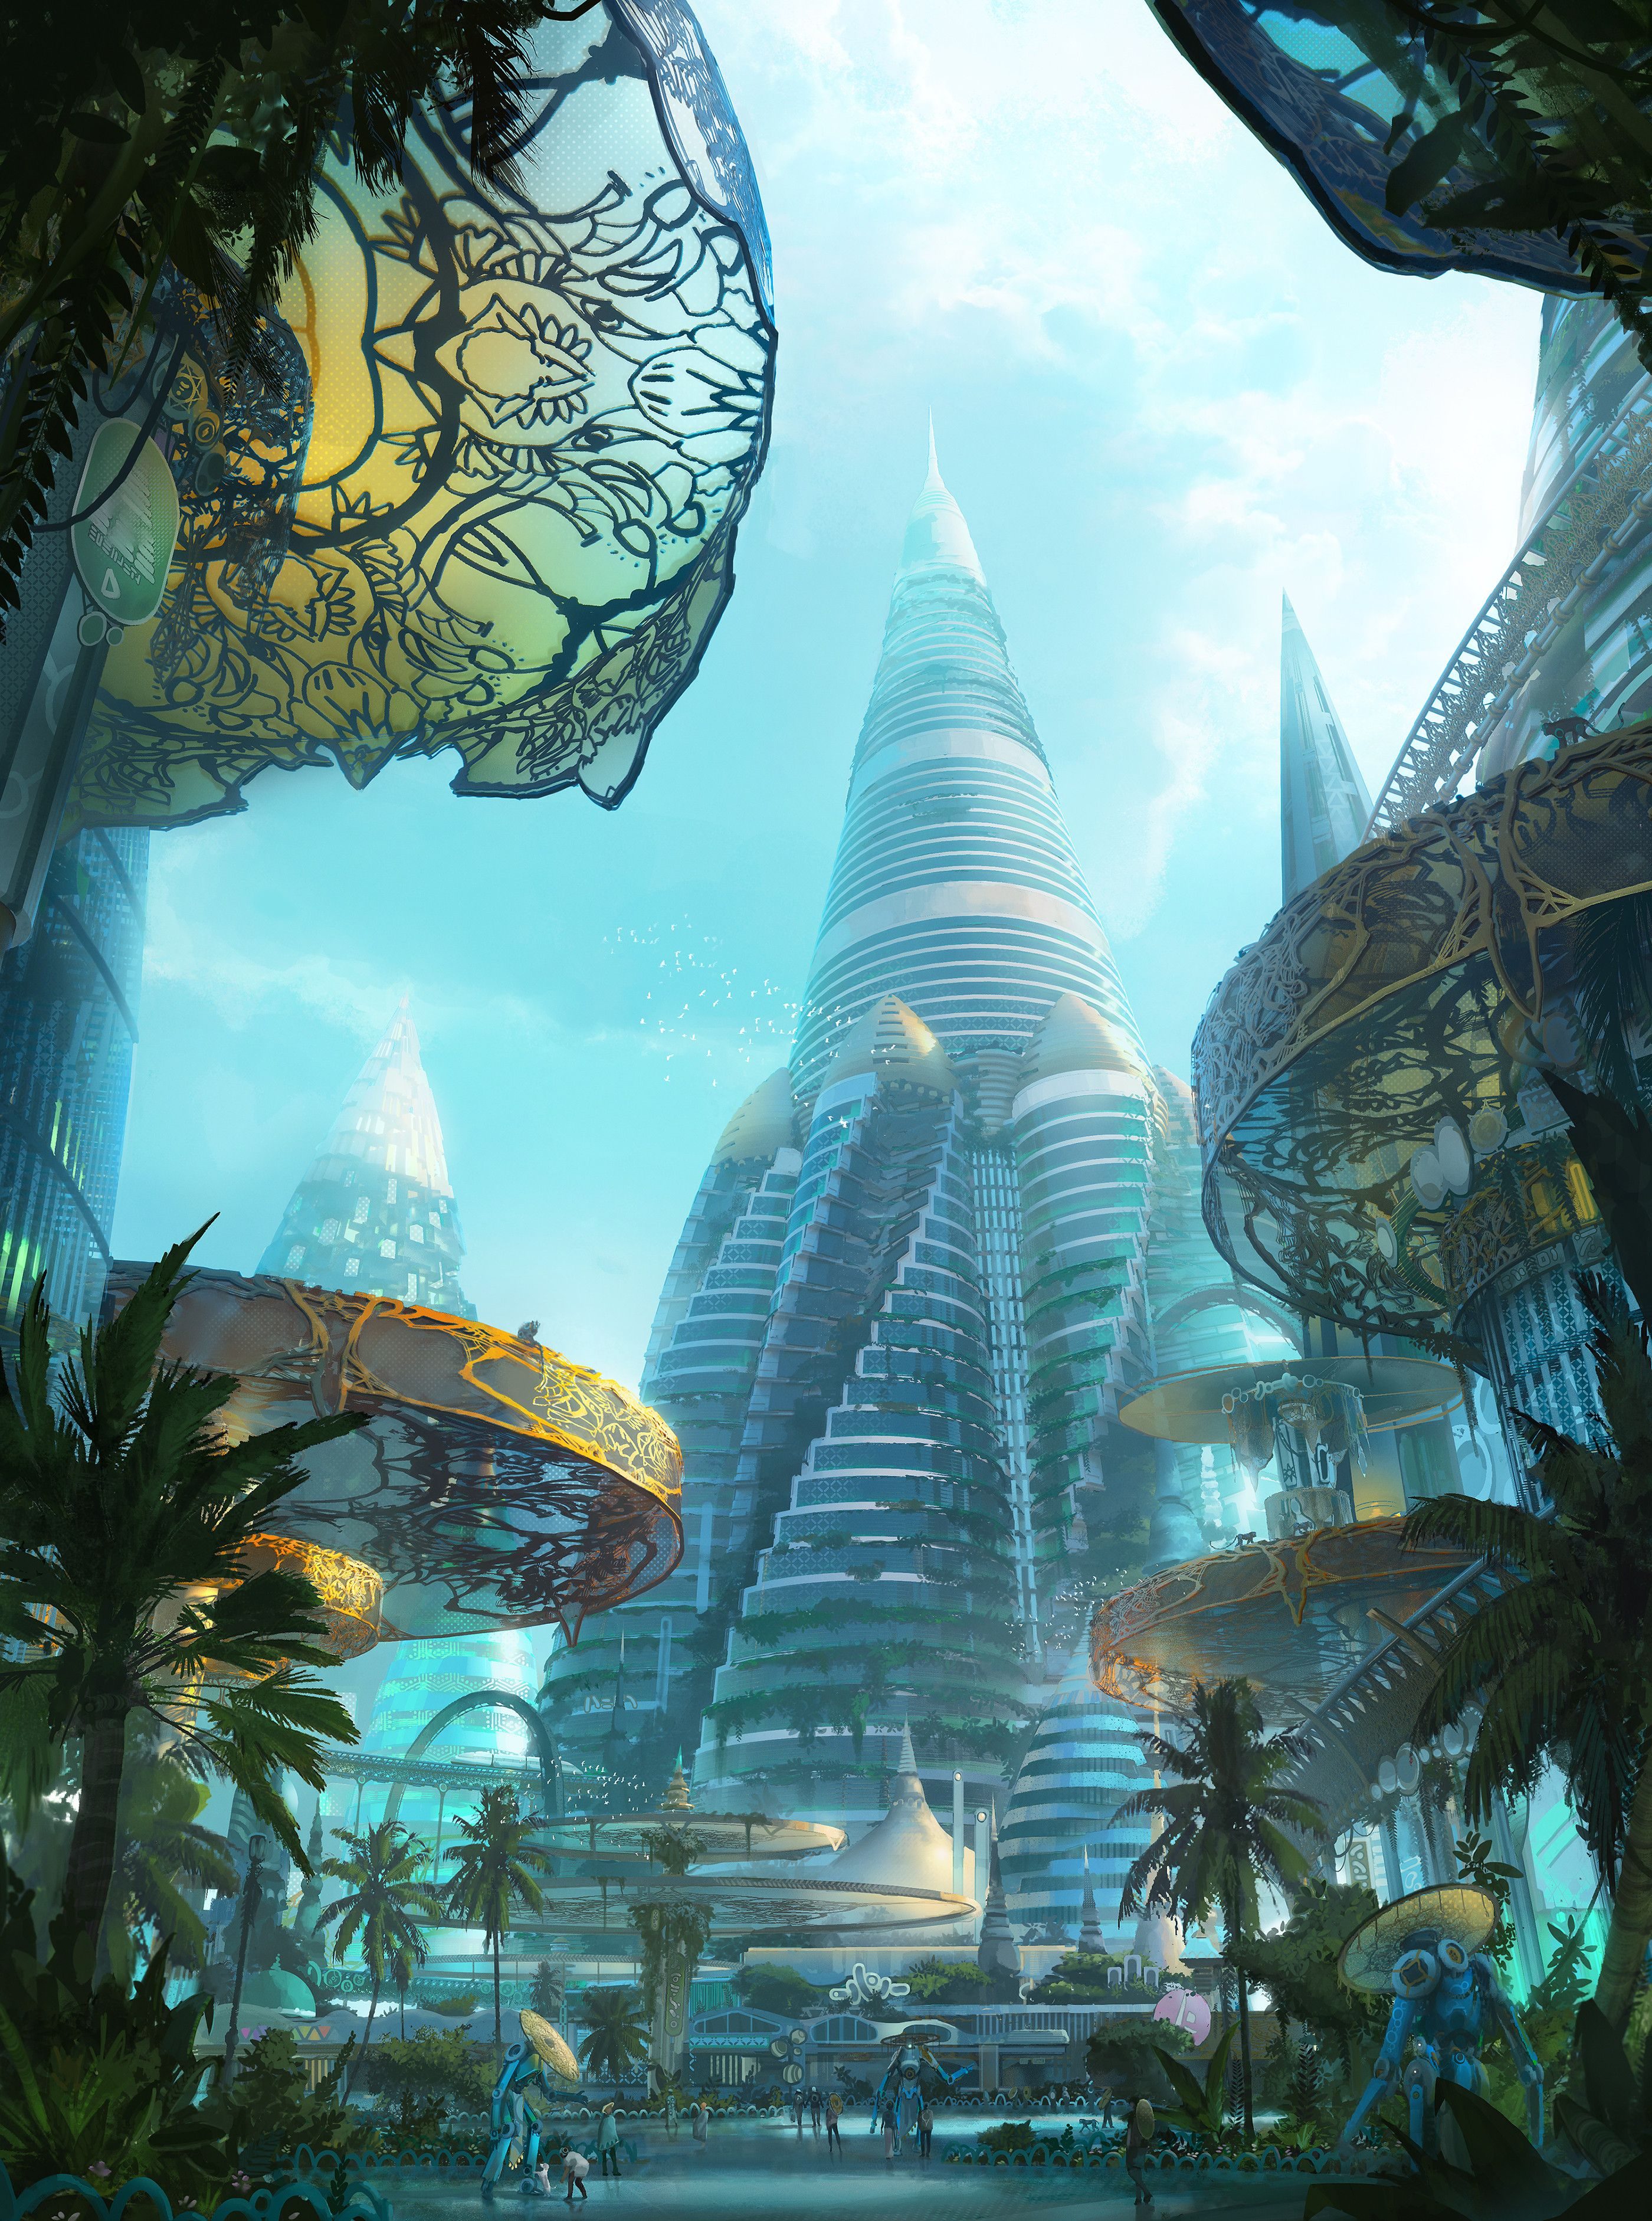 So Tropical That It Feels Like It S Under The Ocean In 2020 Fantasy Art Landscapes Futuristic City Fantasy City